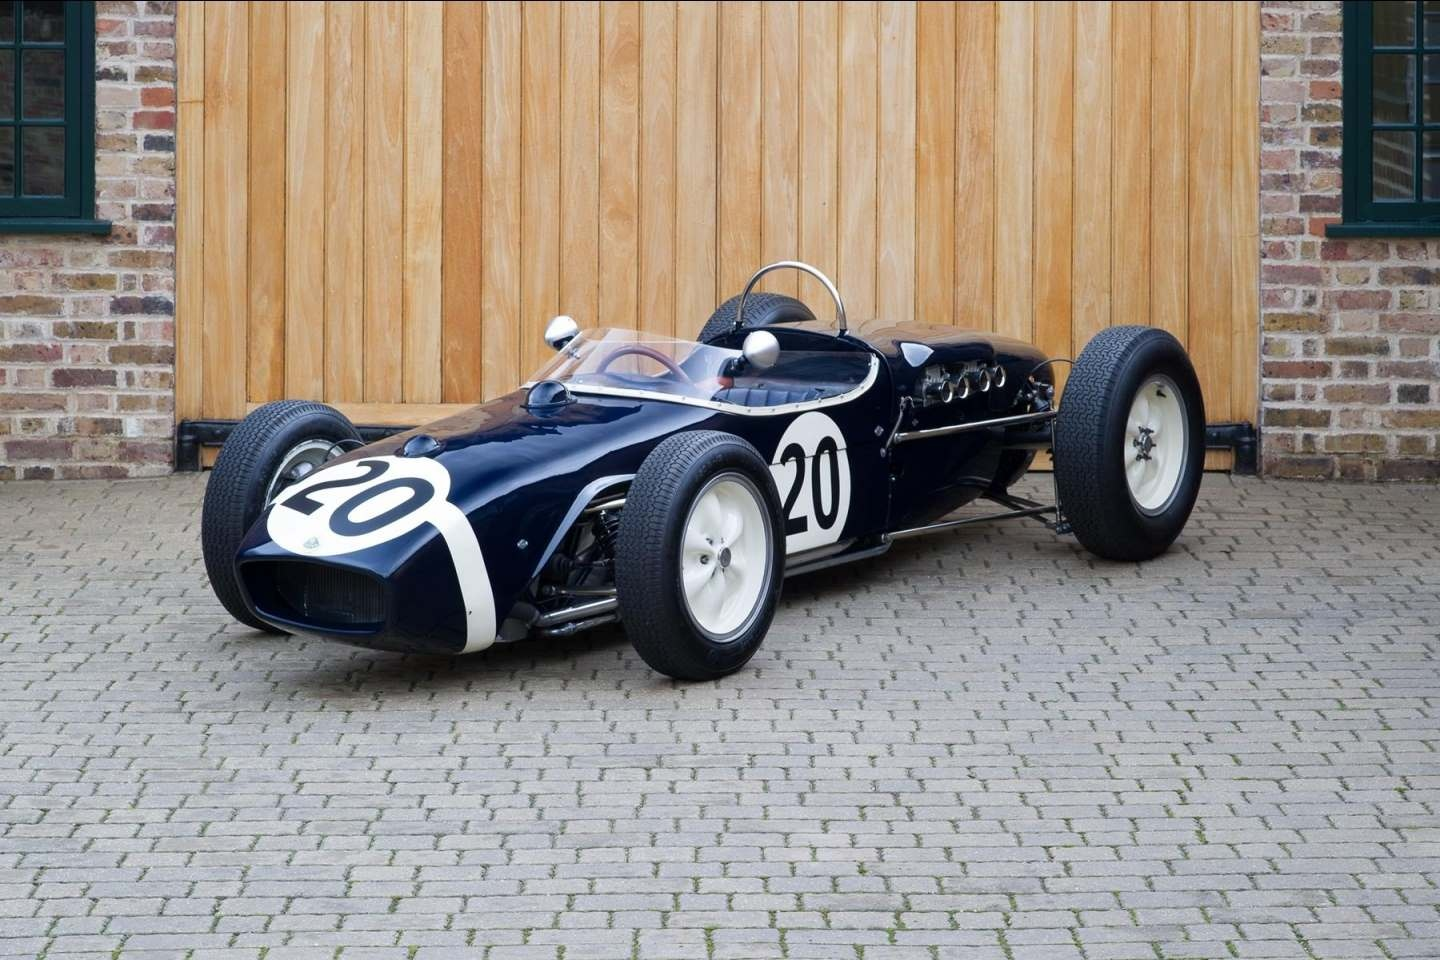 Lotus 18 for sale - Vehicle Sales - DK Engineering